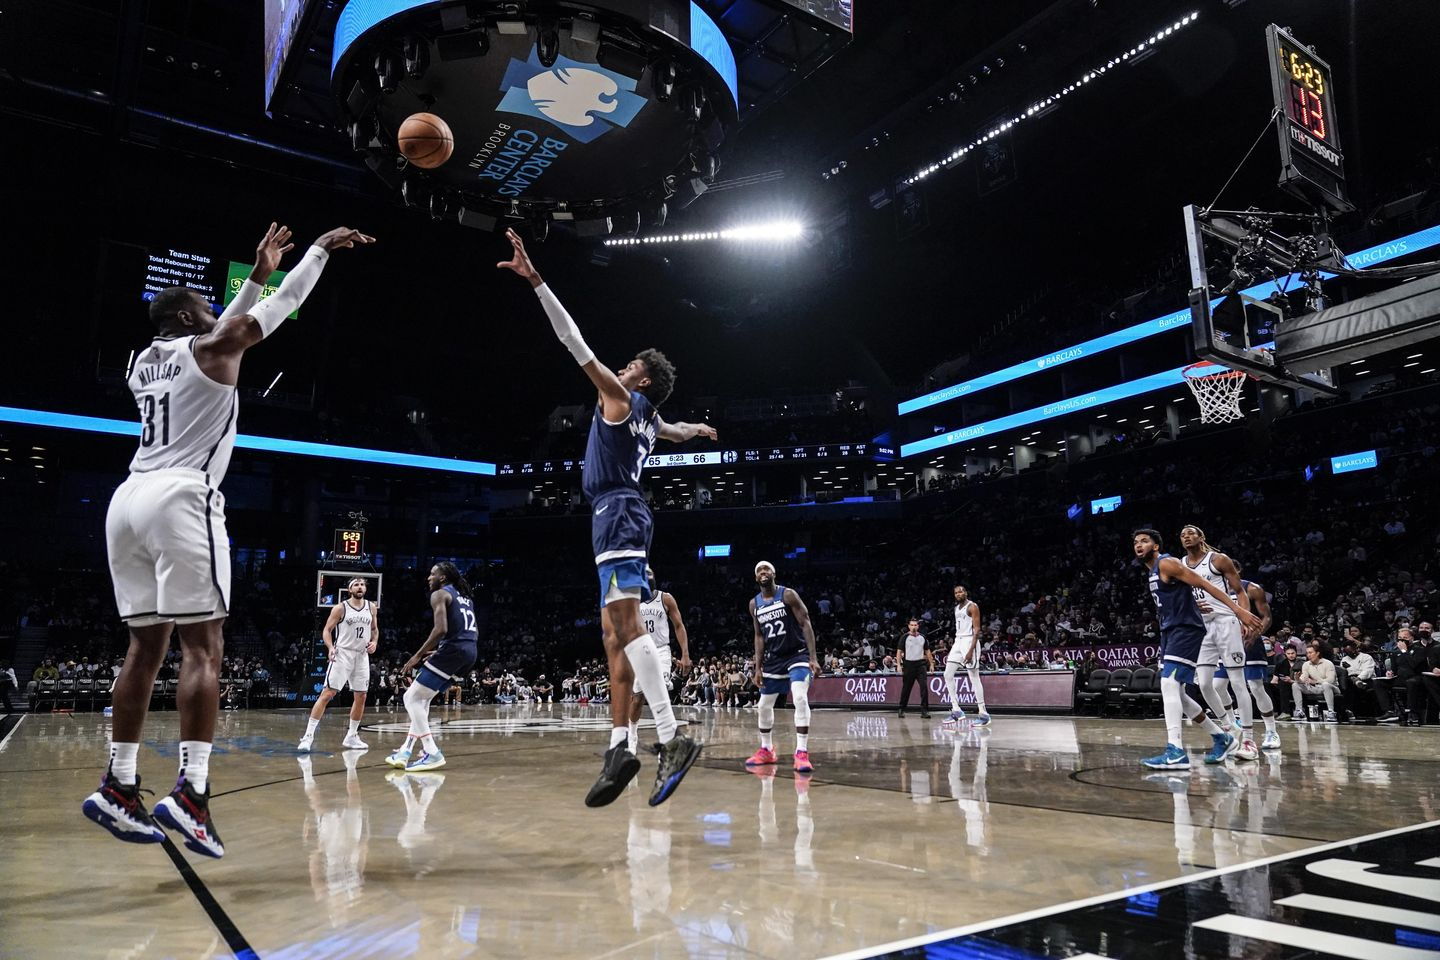 Right on cue: NBA finds high-tech option for virus testing